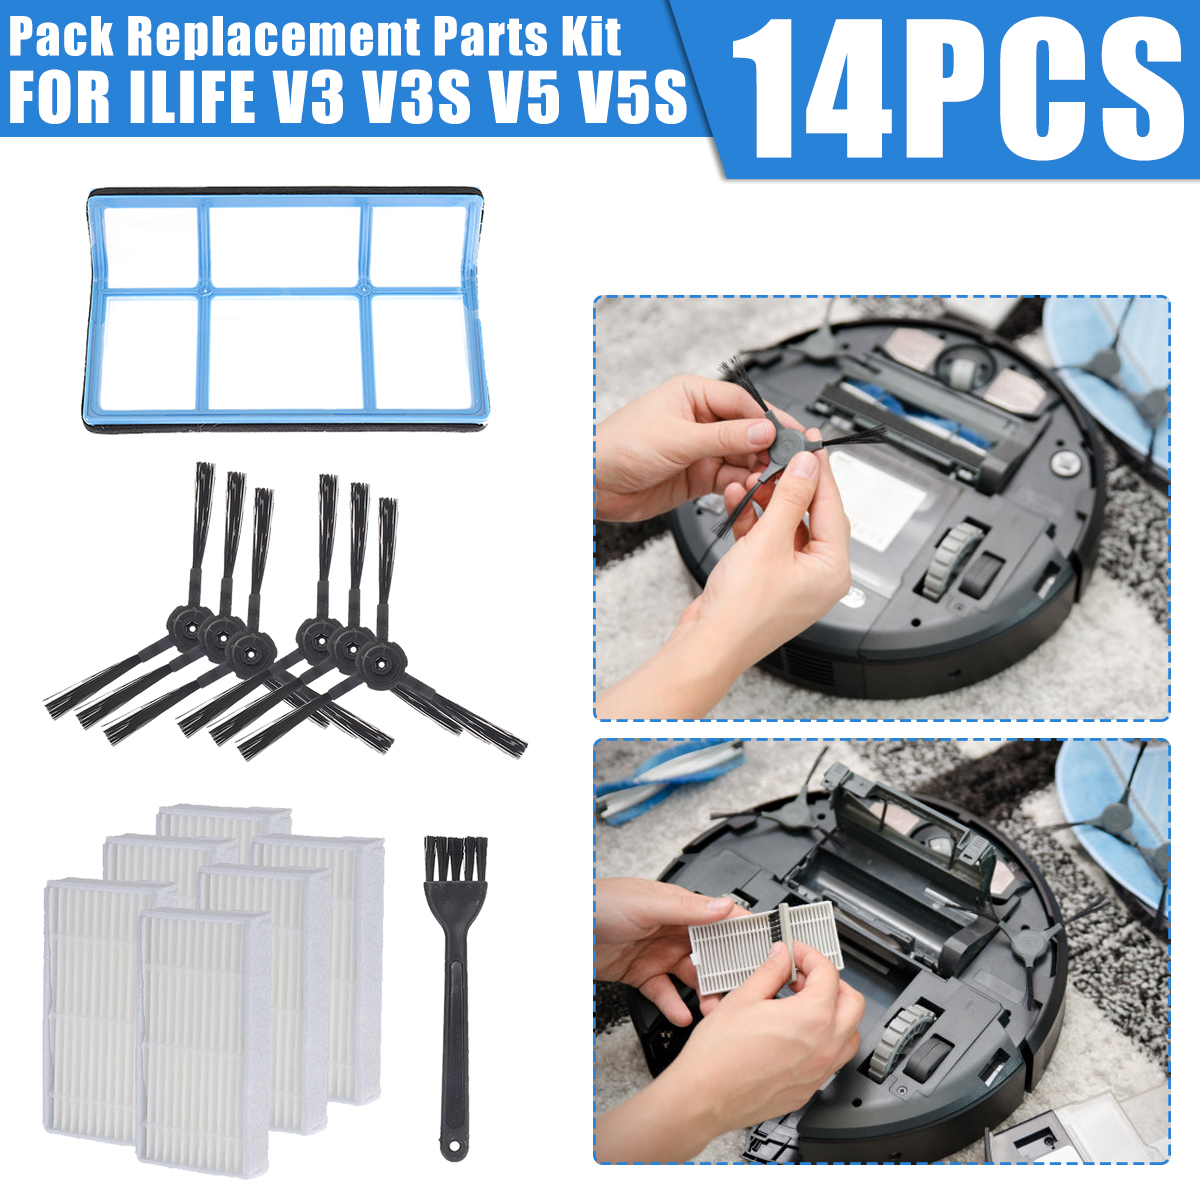 14 Pack Replacement Parts Kit For ILIFE V3 V3S V5 V5s Pro Robot Vacuum Cleaners